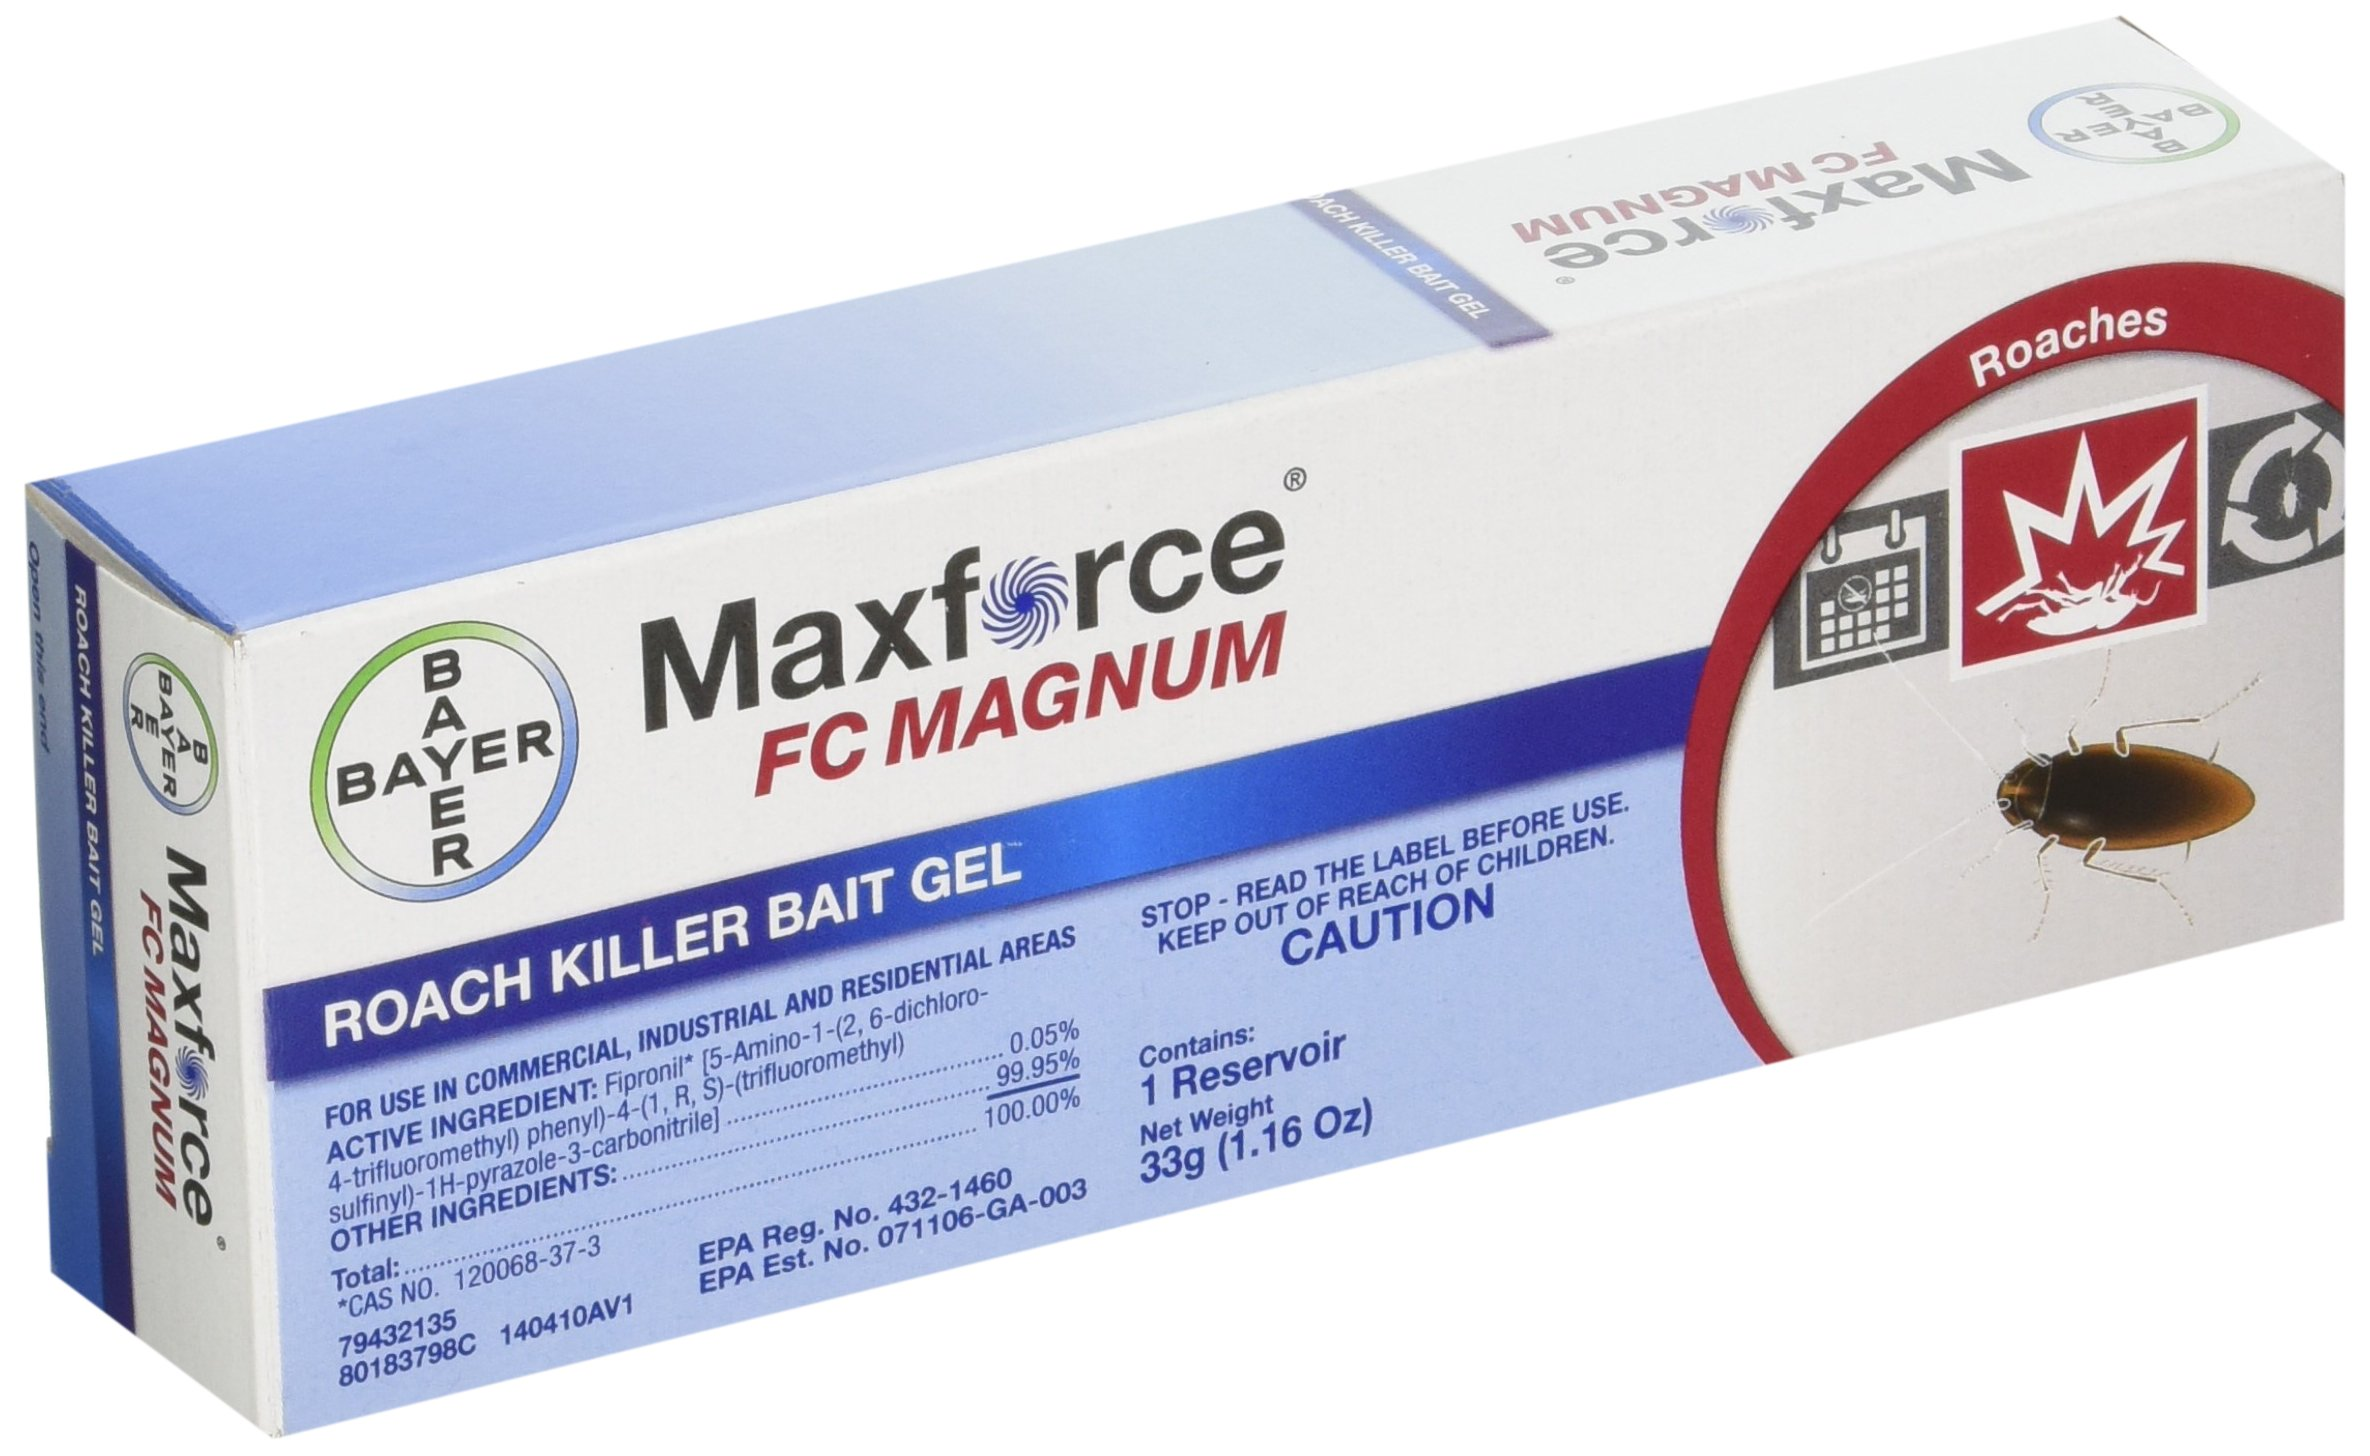 Bayer Maxforce FC Magnum Roach Killer Bait Gel, 1.16 oz.